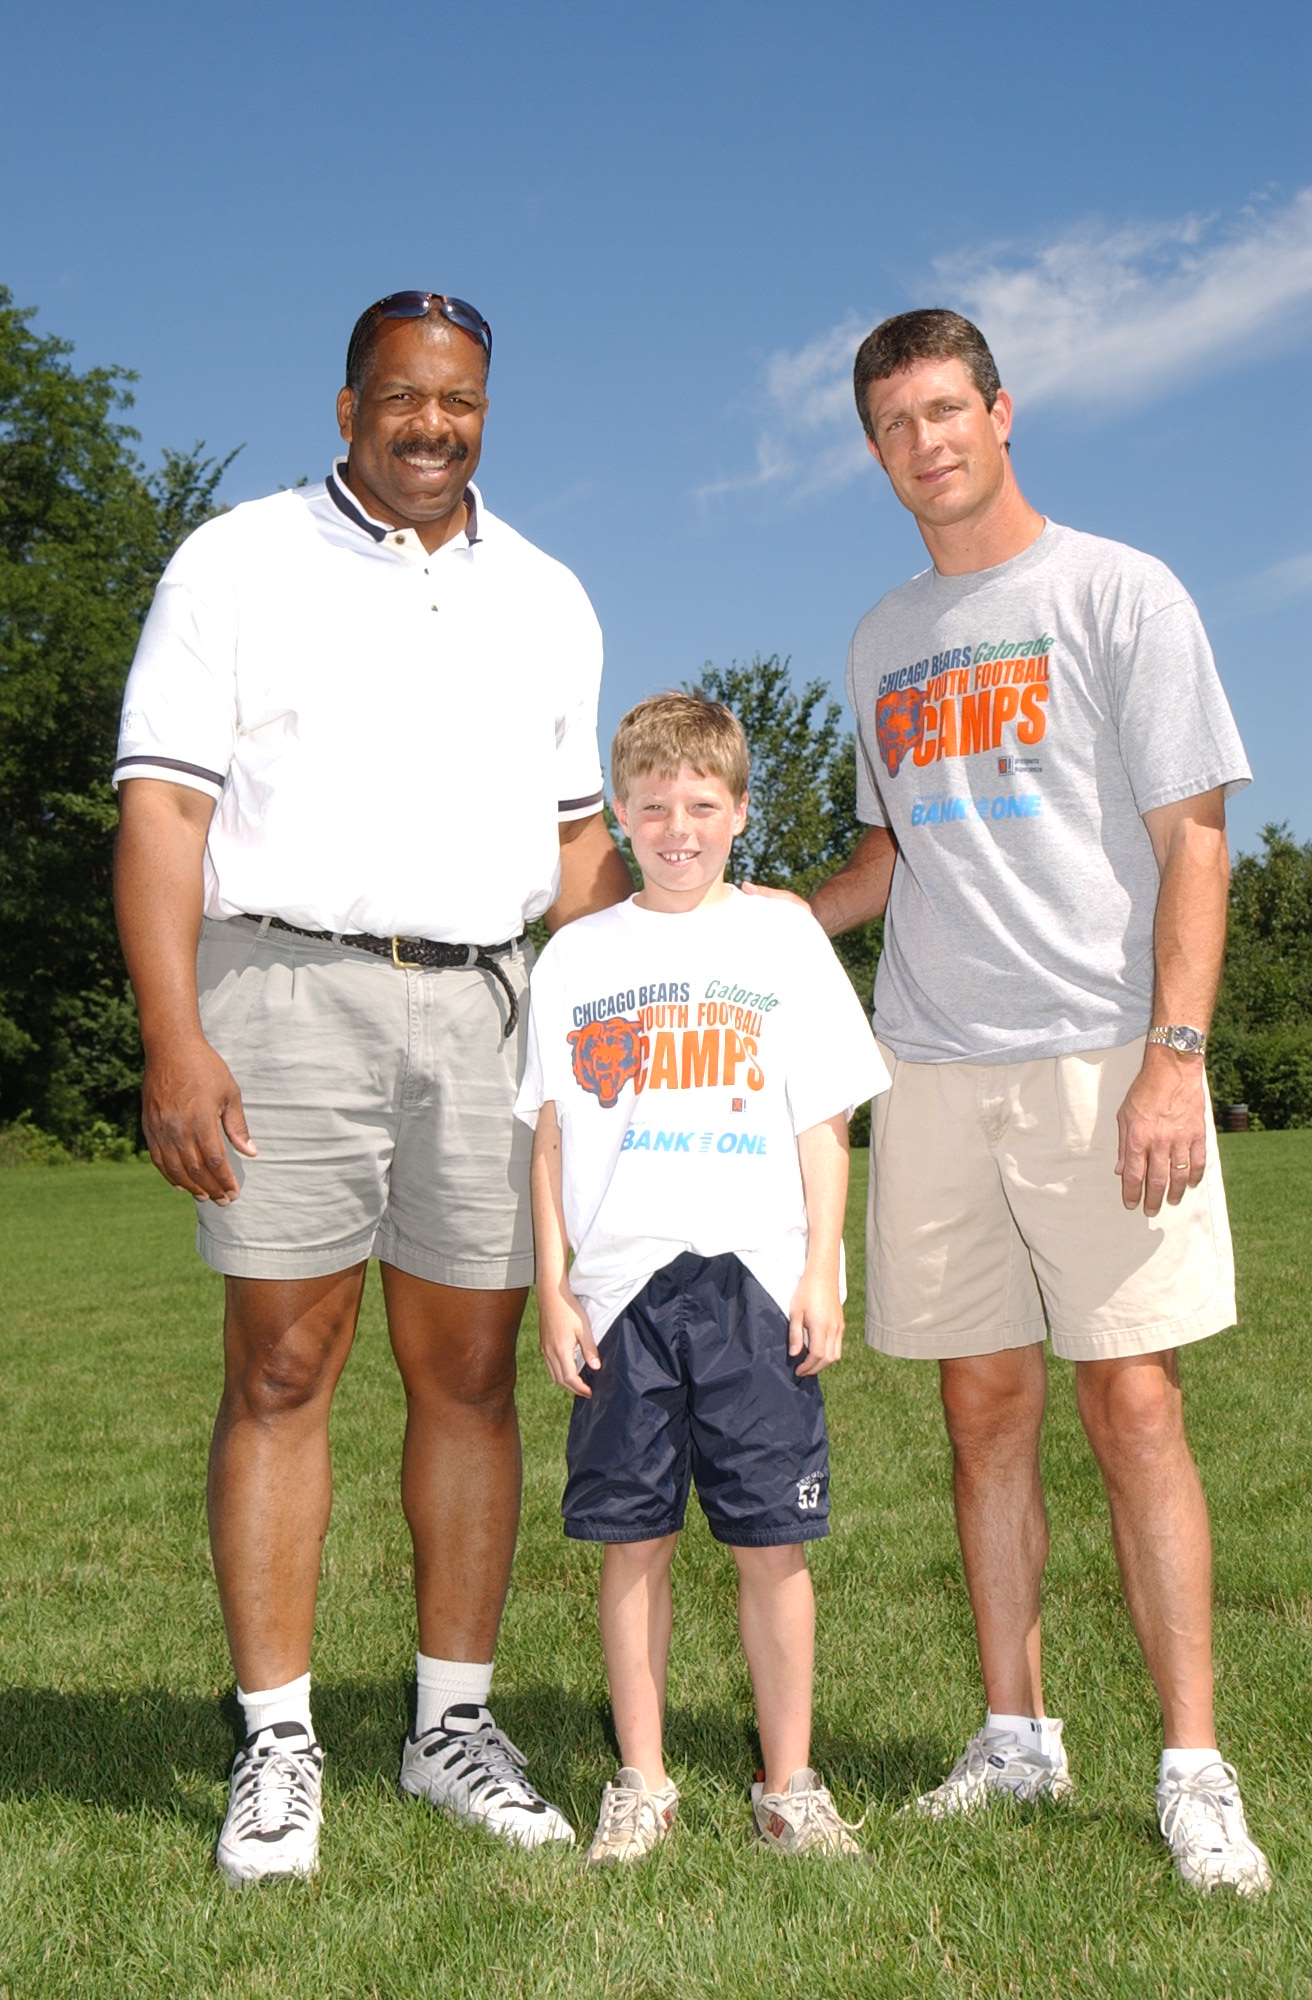 New Alumni Heroes Lend Support to Chicago Bears Youth Football Camp  for sale